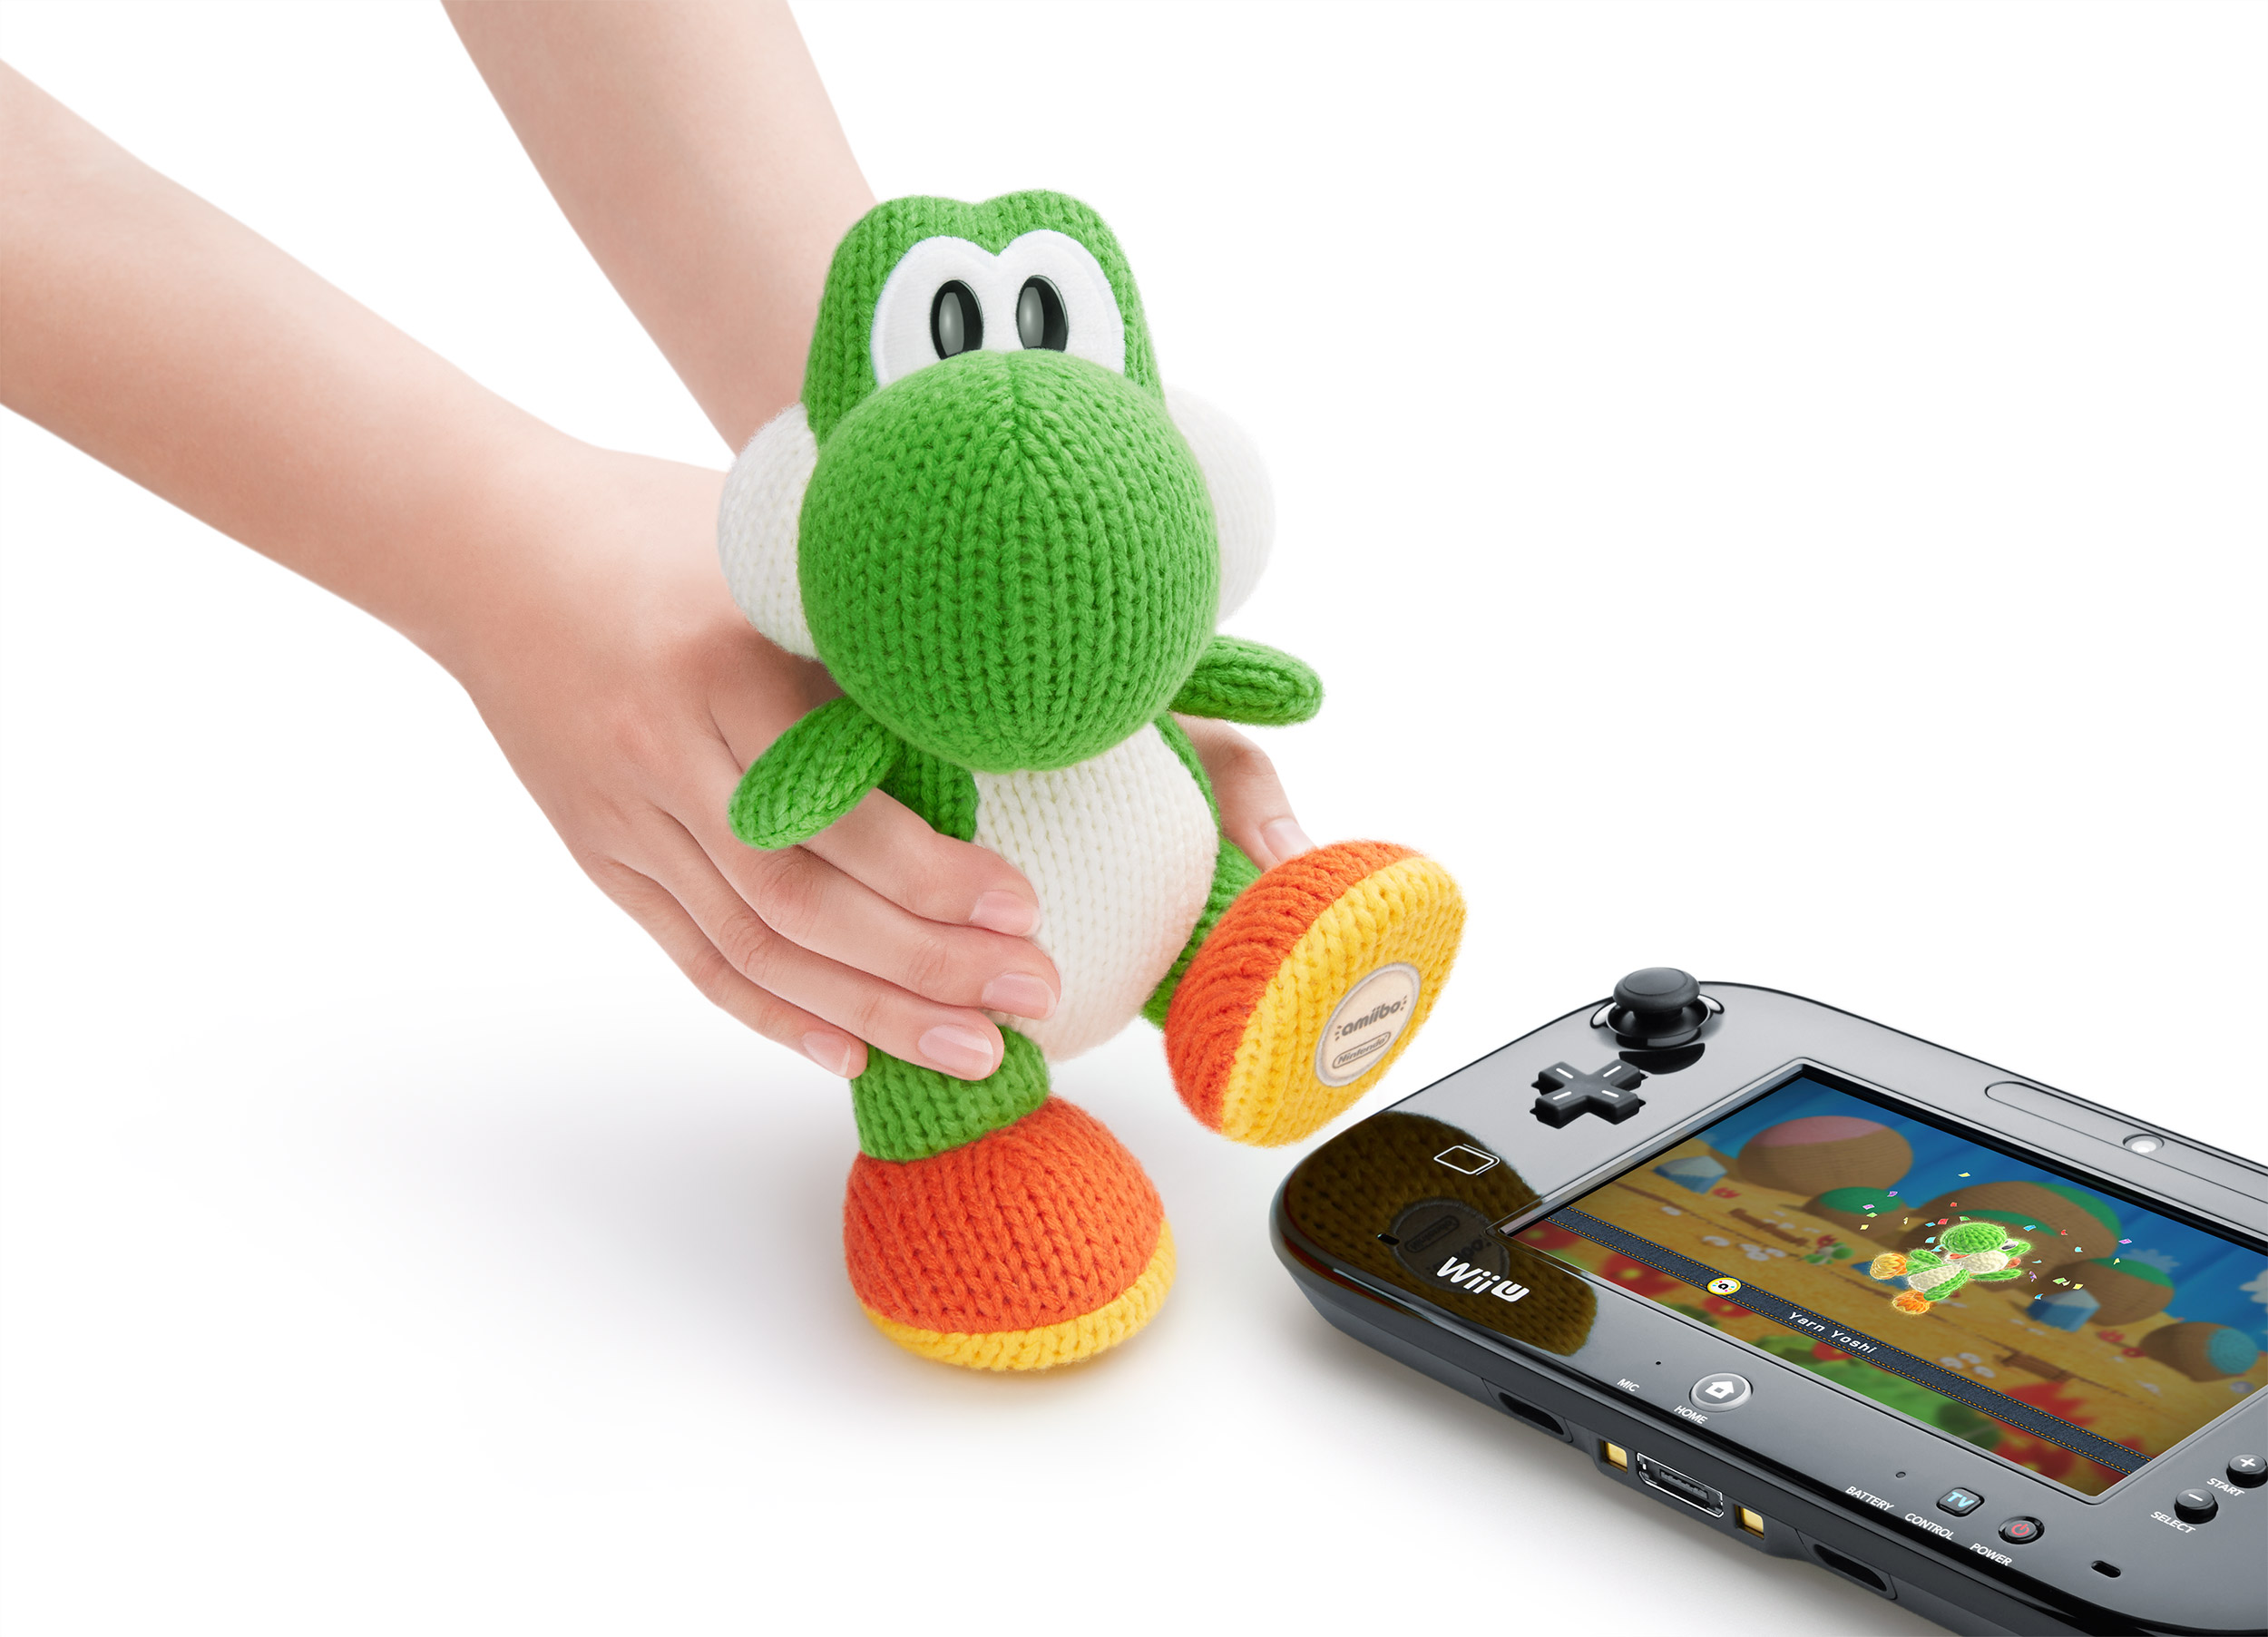 Look at his cute little Amiibo foot, dont'cha just want to eat him up!